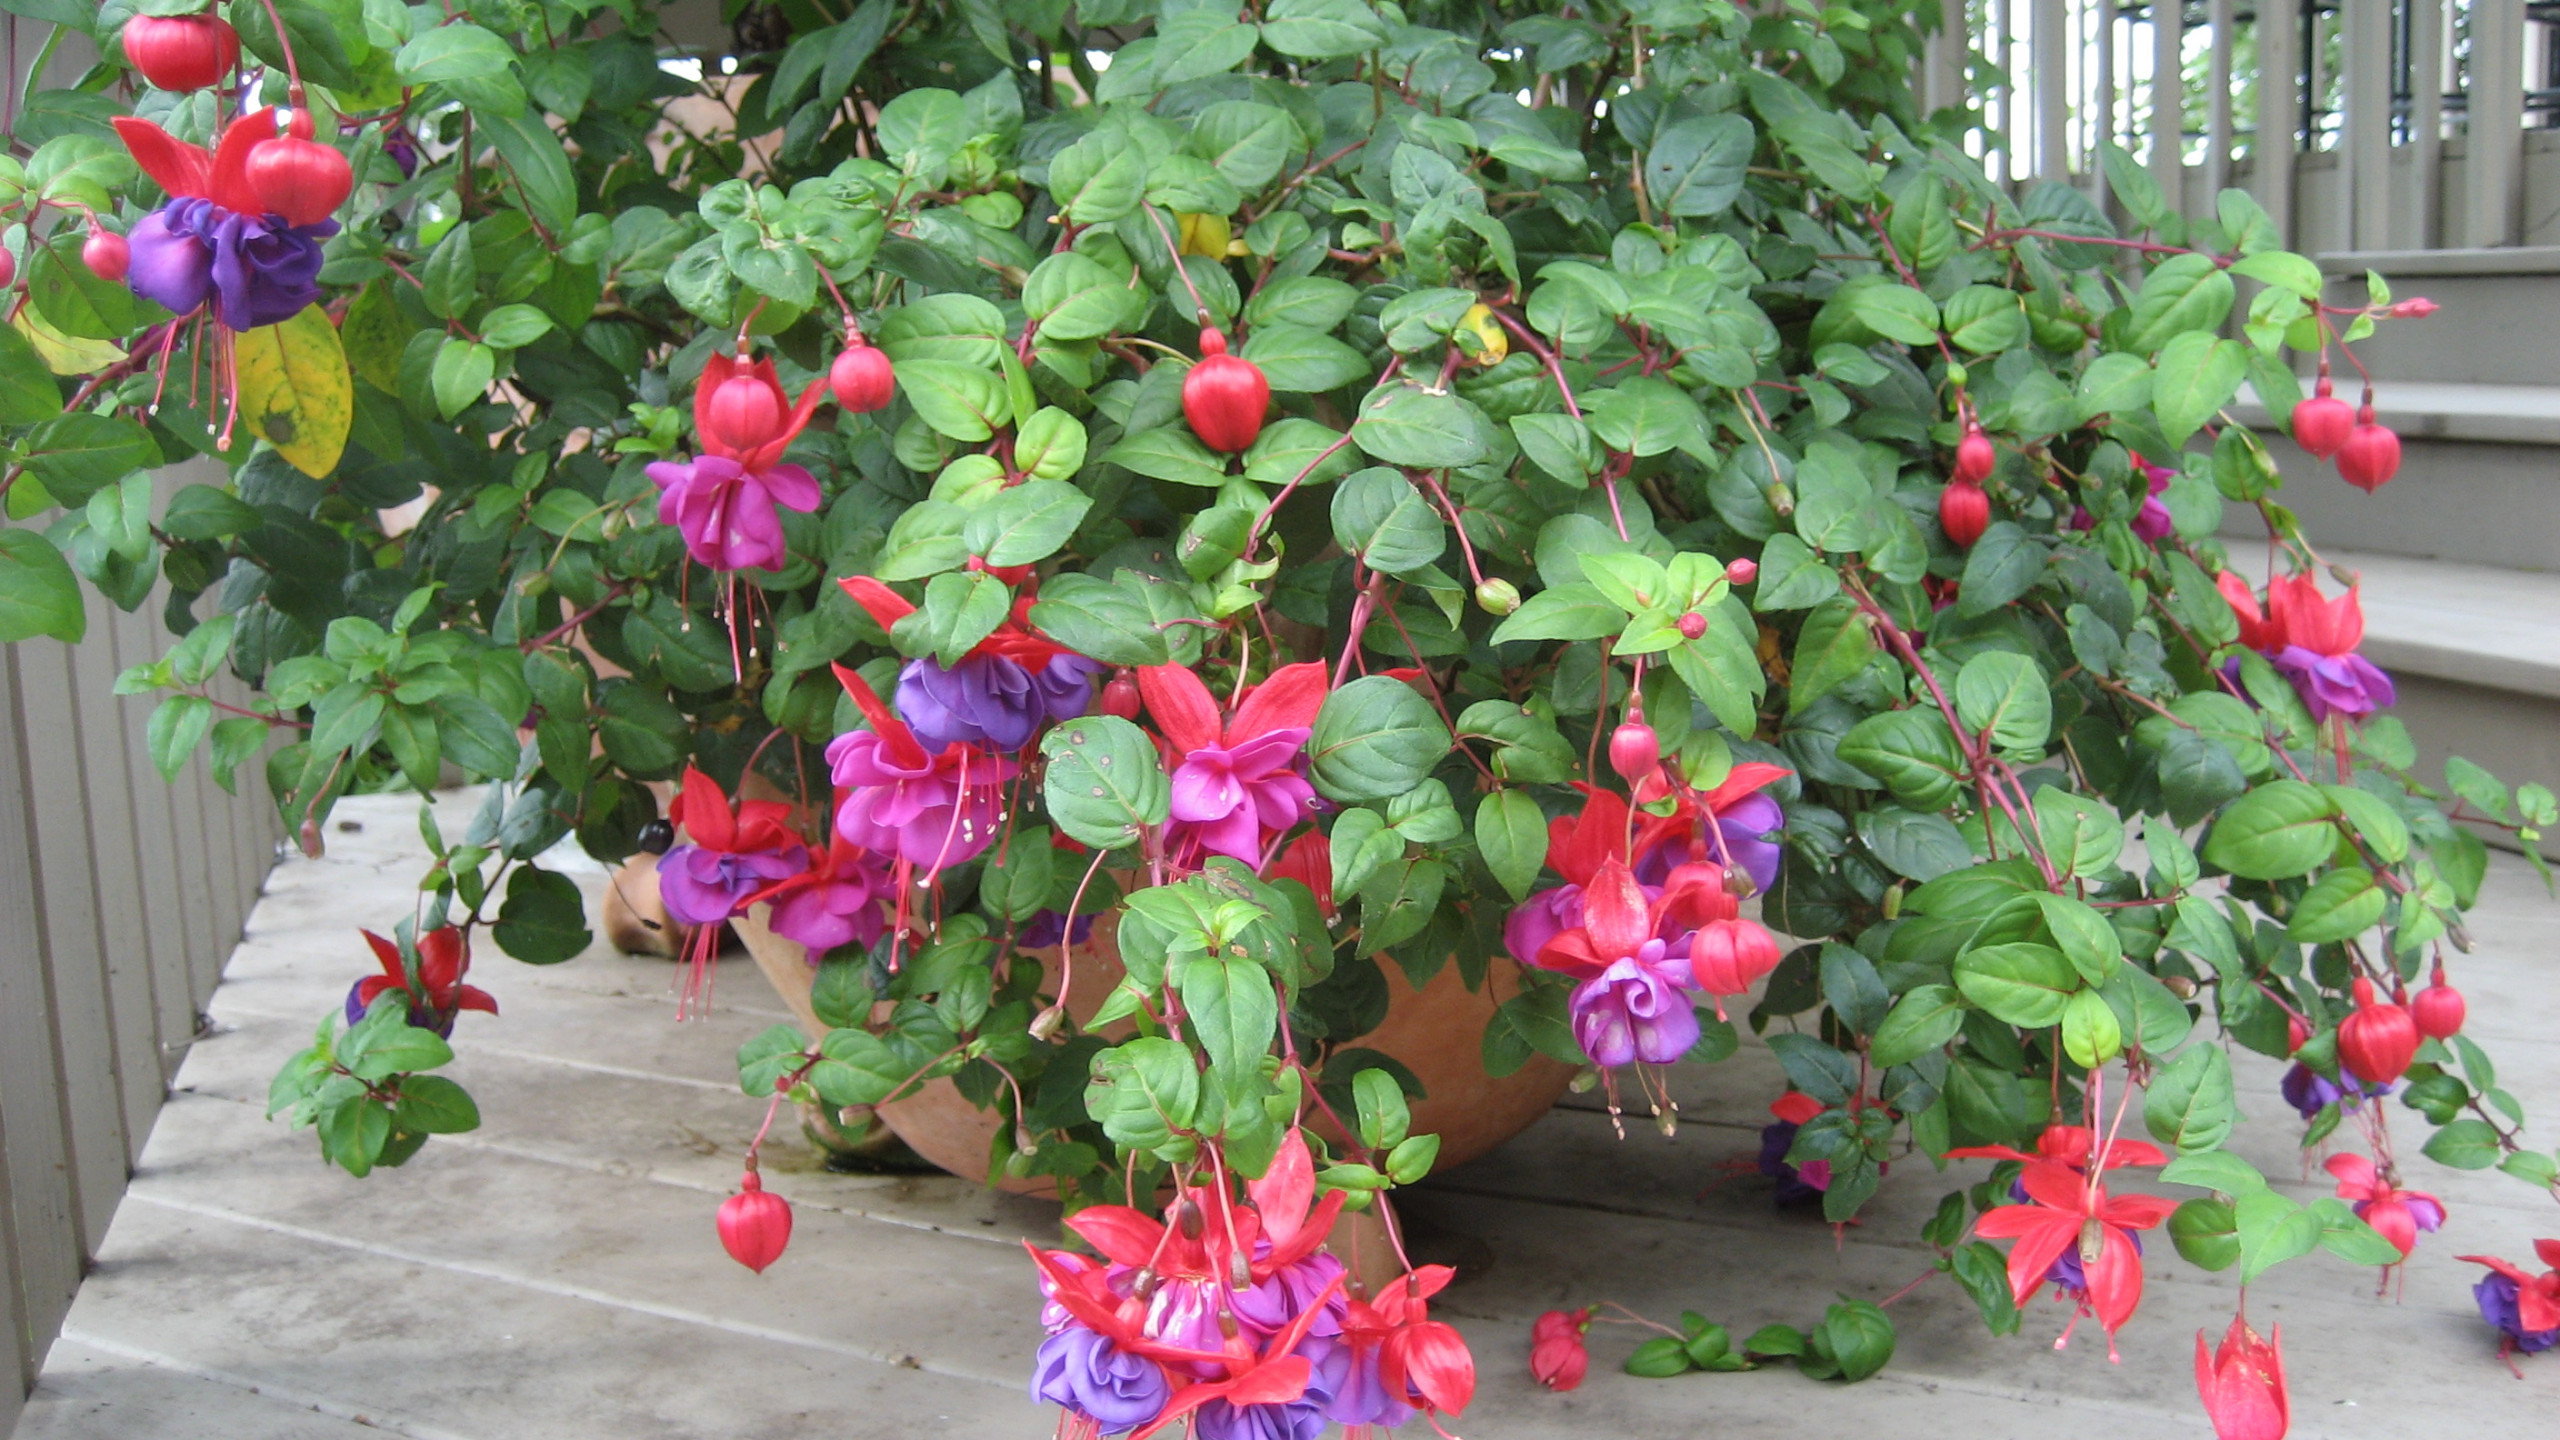 FUSCIA ON DECK BEAUTFUL DETAILS IN THESE FLOWERS